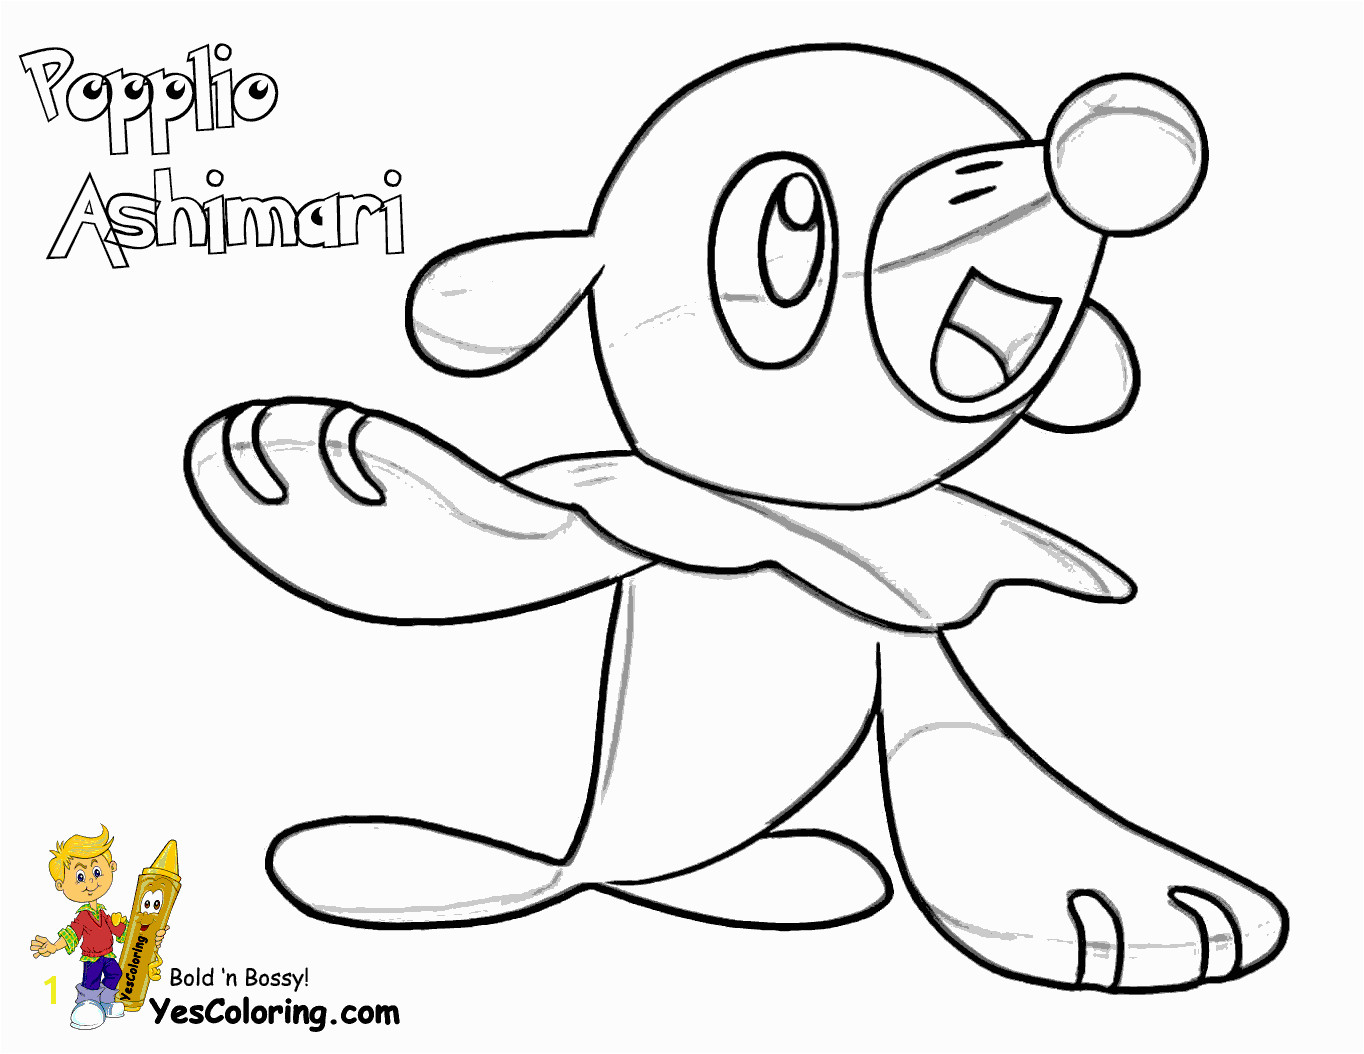 Amazing Popplio Coloring Page Download Printab Unknown